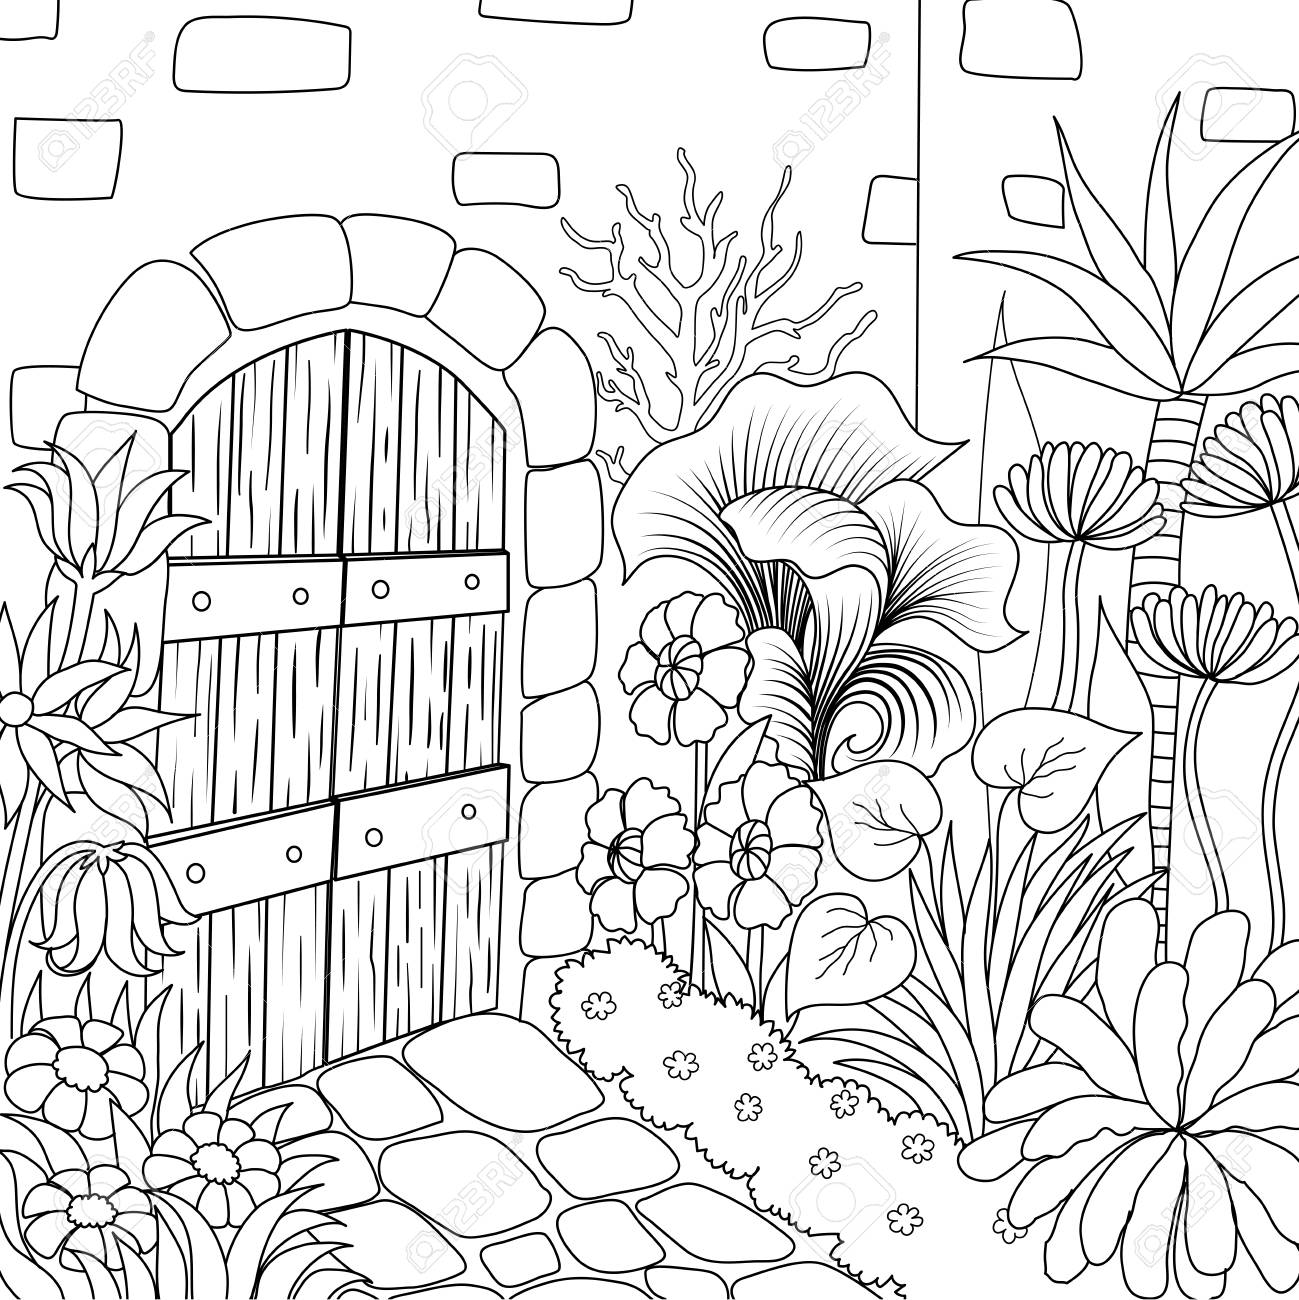 Simple line art of beautiful garden for coloring book page. Vector illustration - 105957386